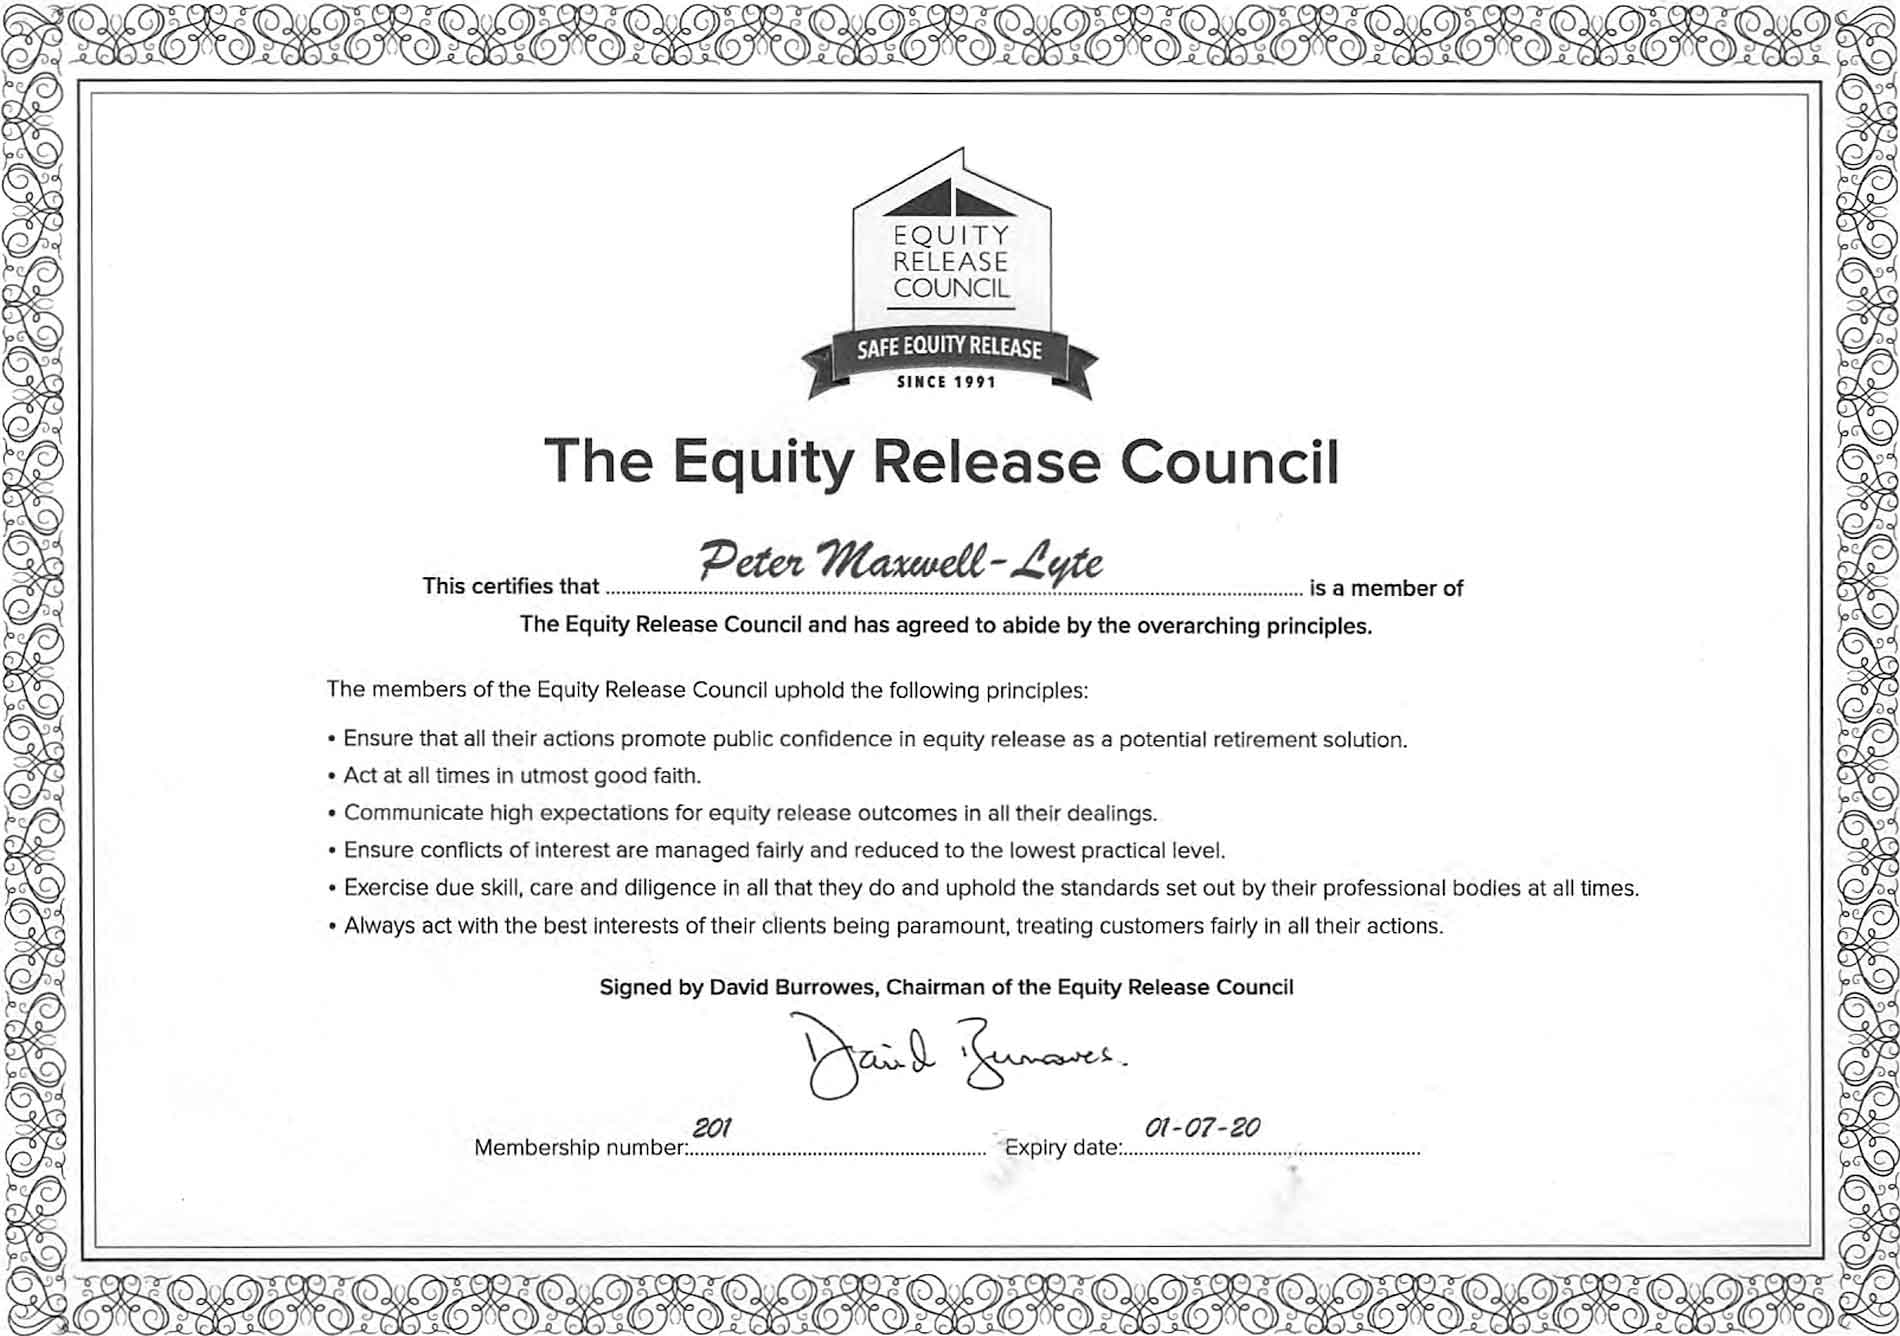 Equity Release Council Certificate 2020